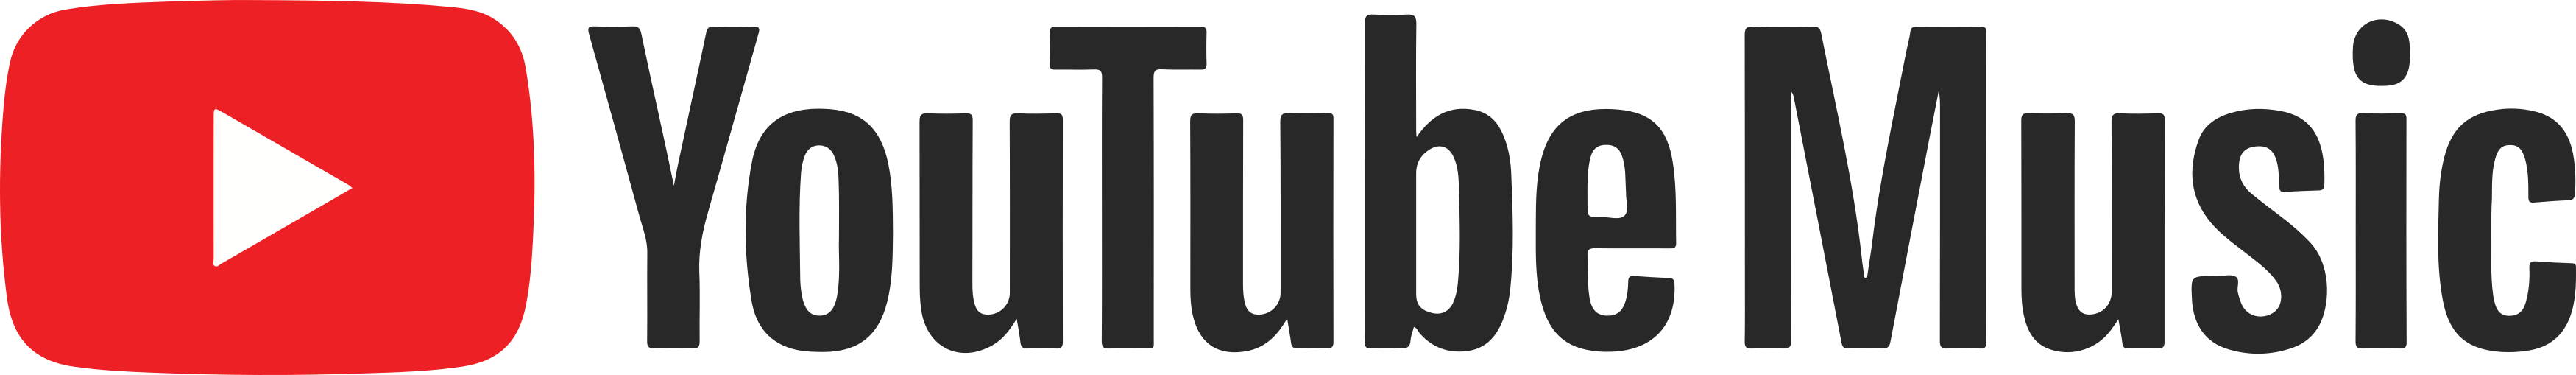 youtube music logo 2 - Youtube Music Logo